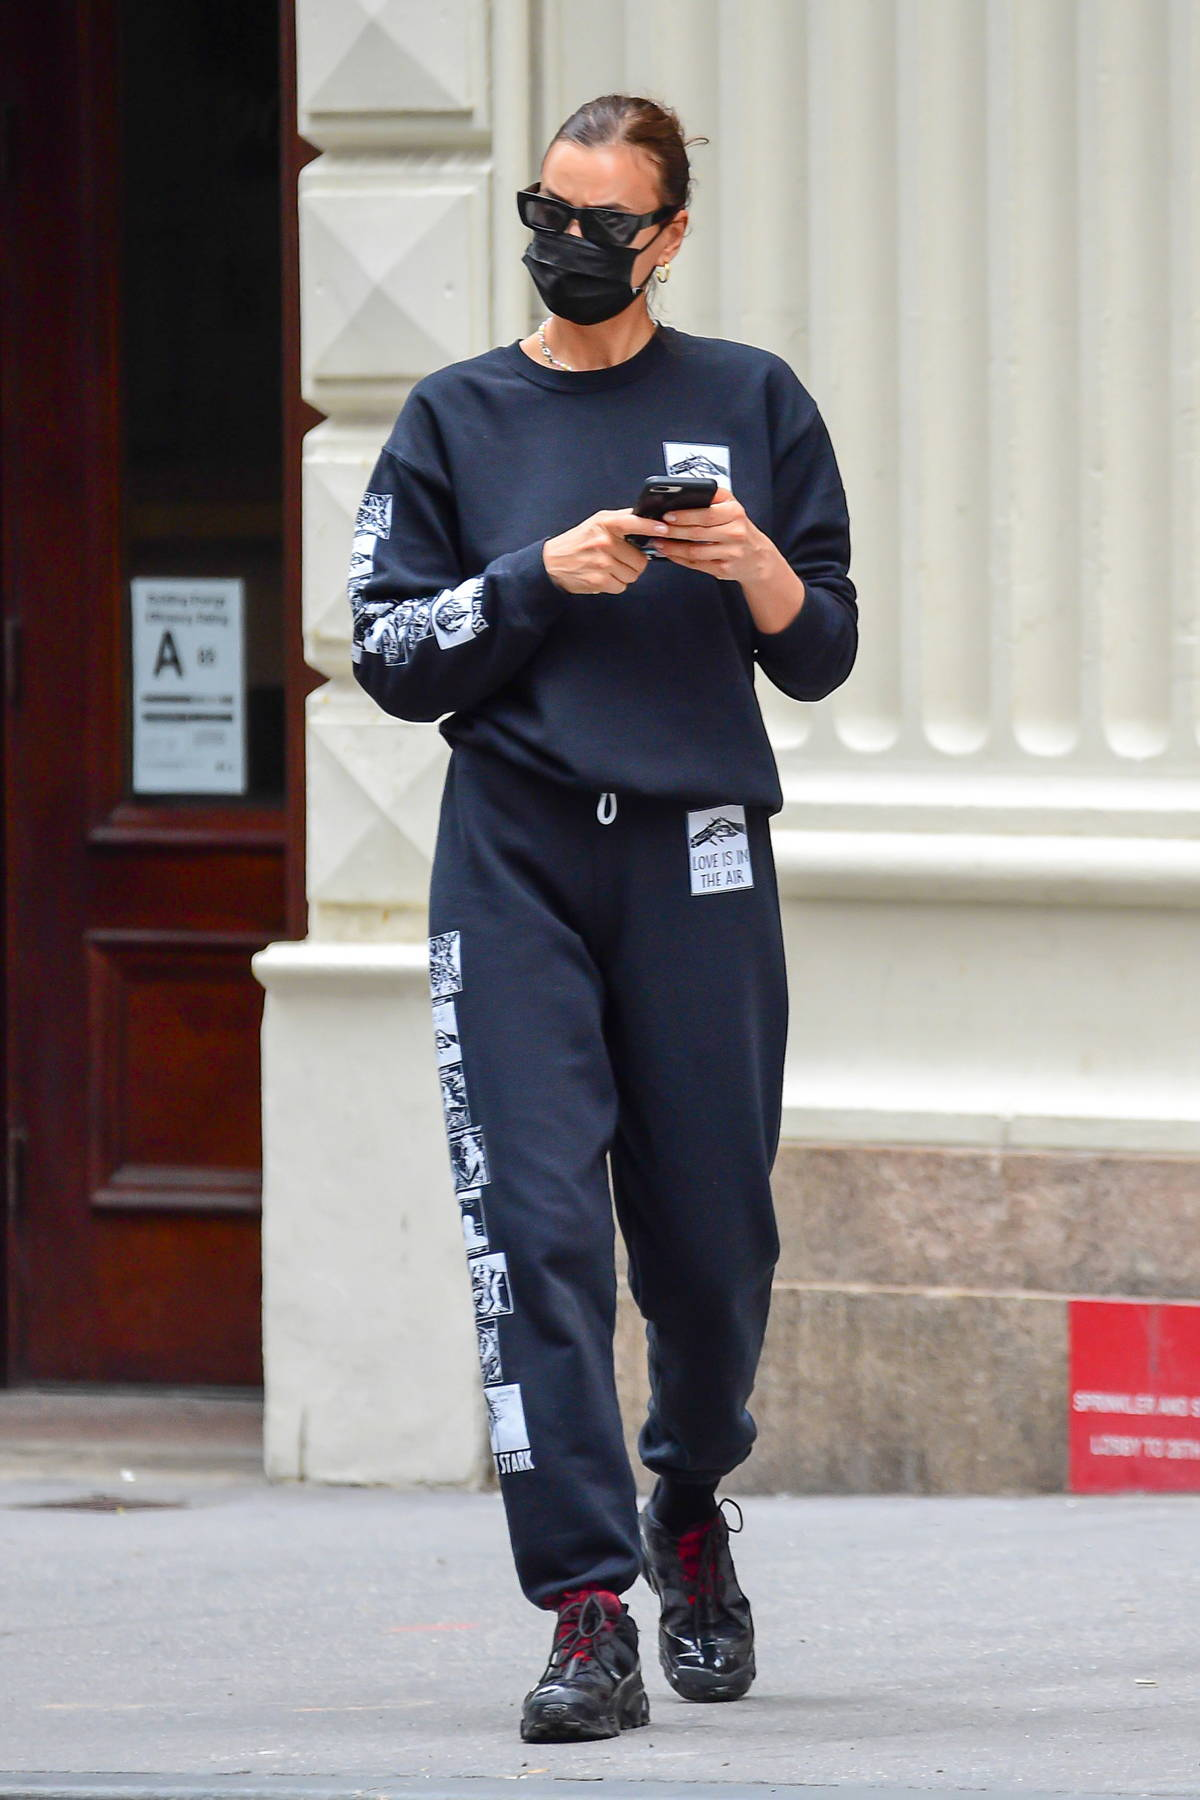 Irina Shayk keeps it casual yet stylish in designer sweats as she steps in New York City